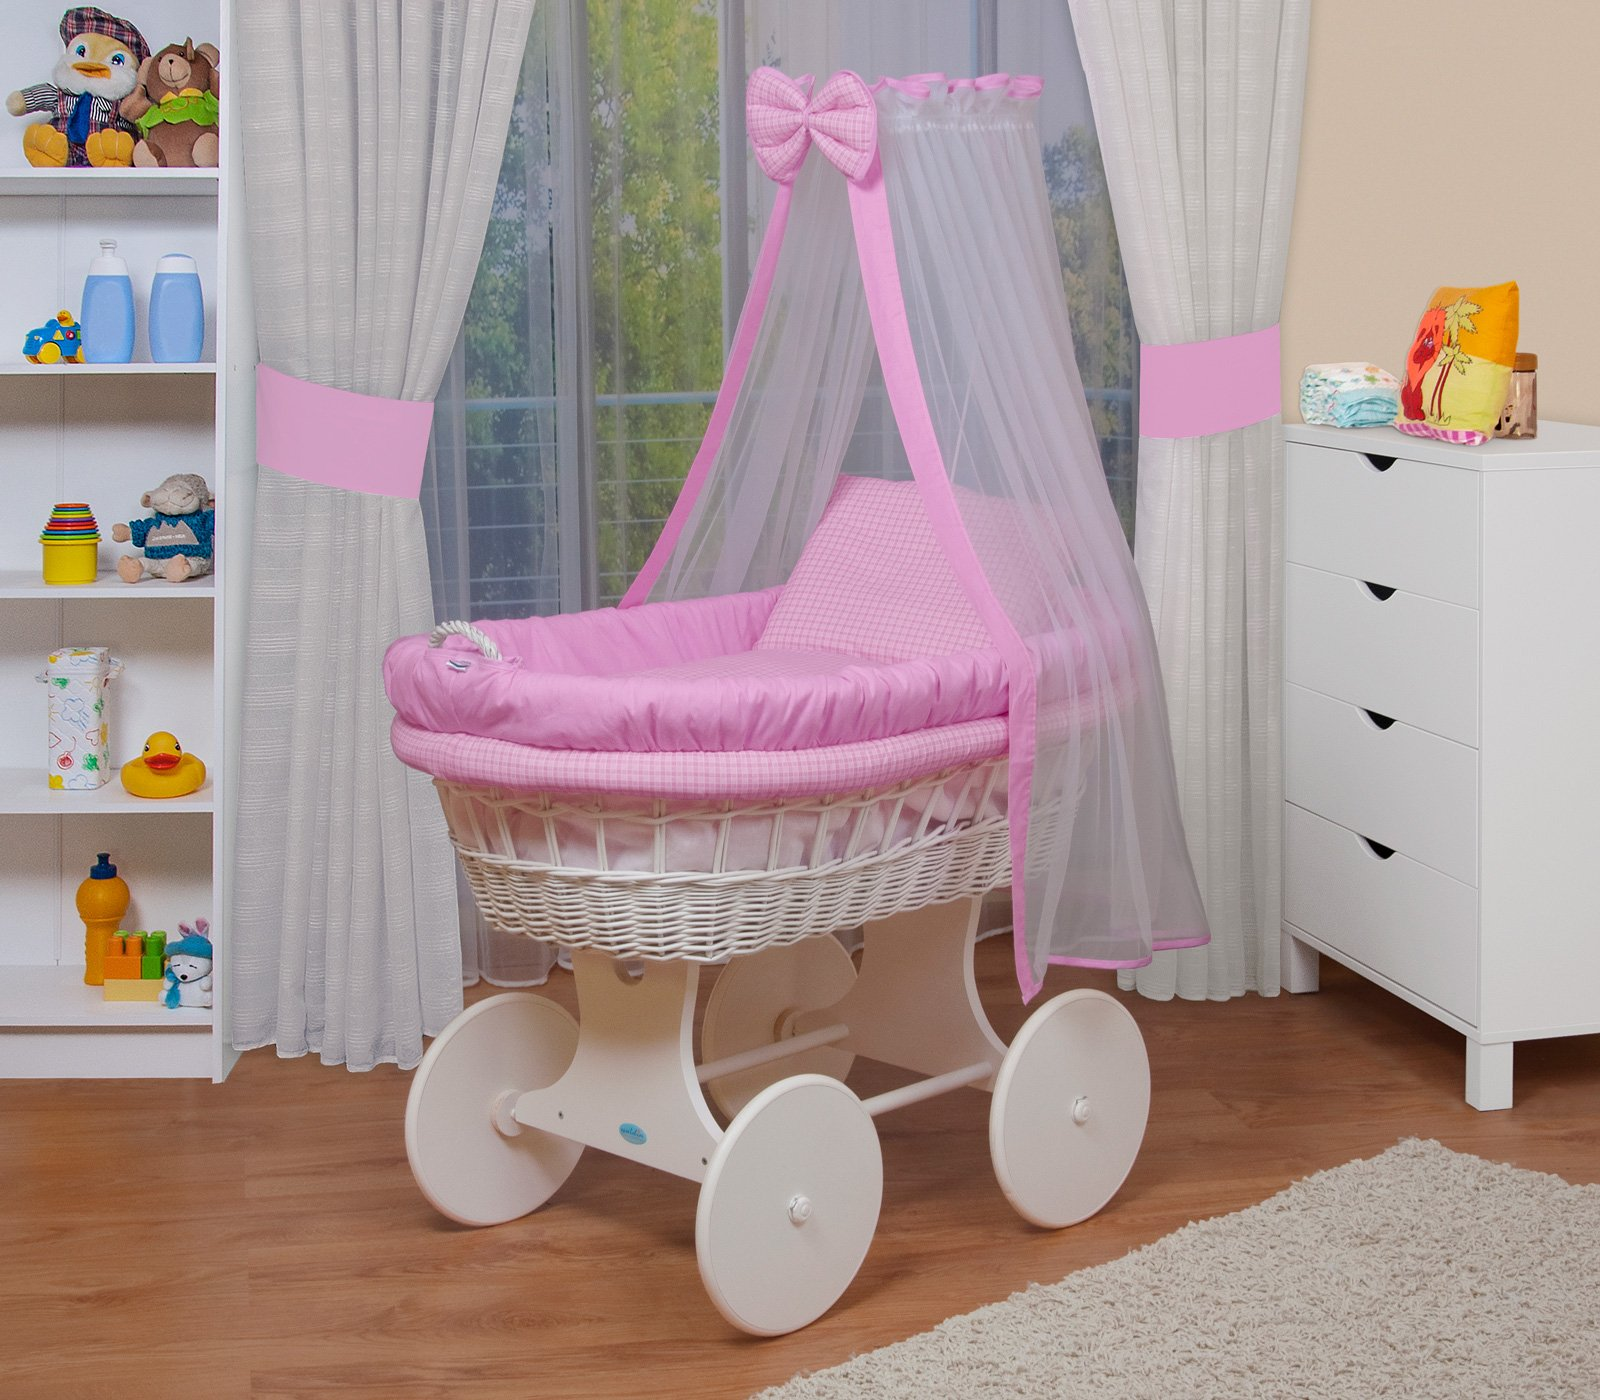 WALDIN Baby wicker cradle, Moses basket,18 models available,white painted stand/wheels,textile colour pink  For more models and colours click on WALDIN under the title Bassinet complete with bedding and stand Certified to safety standard EN 1130-1/2 1